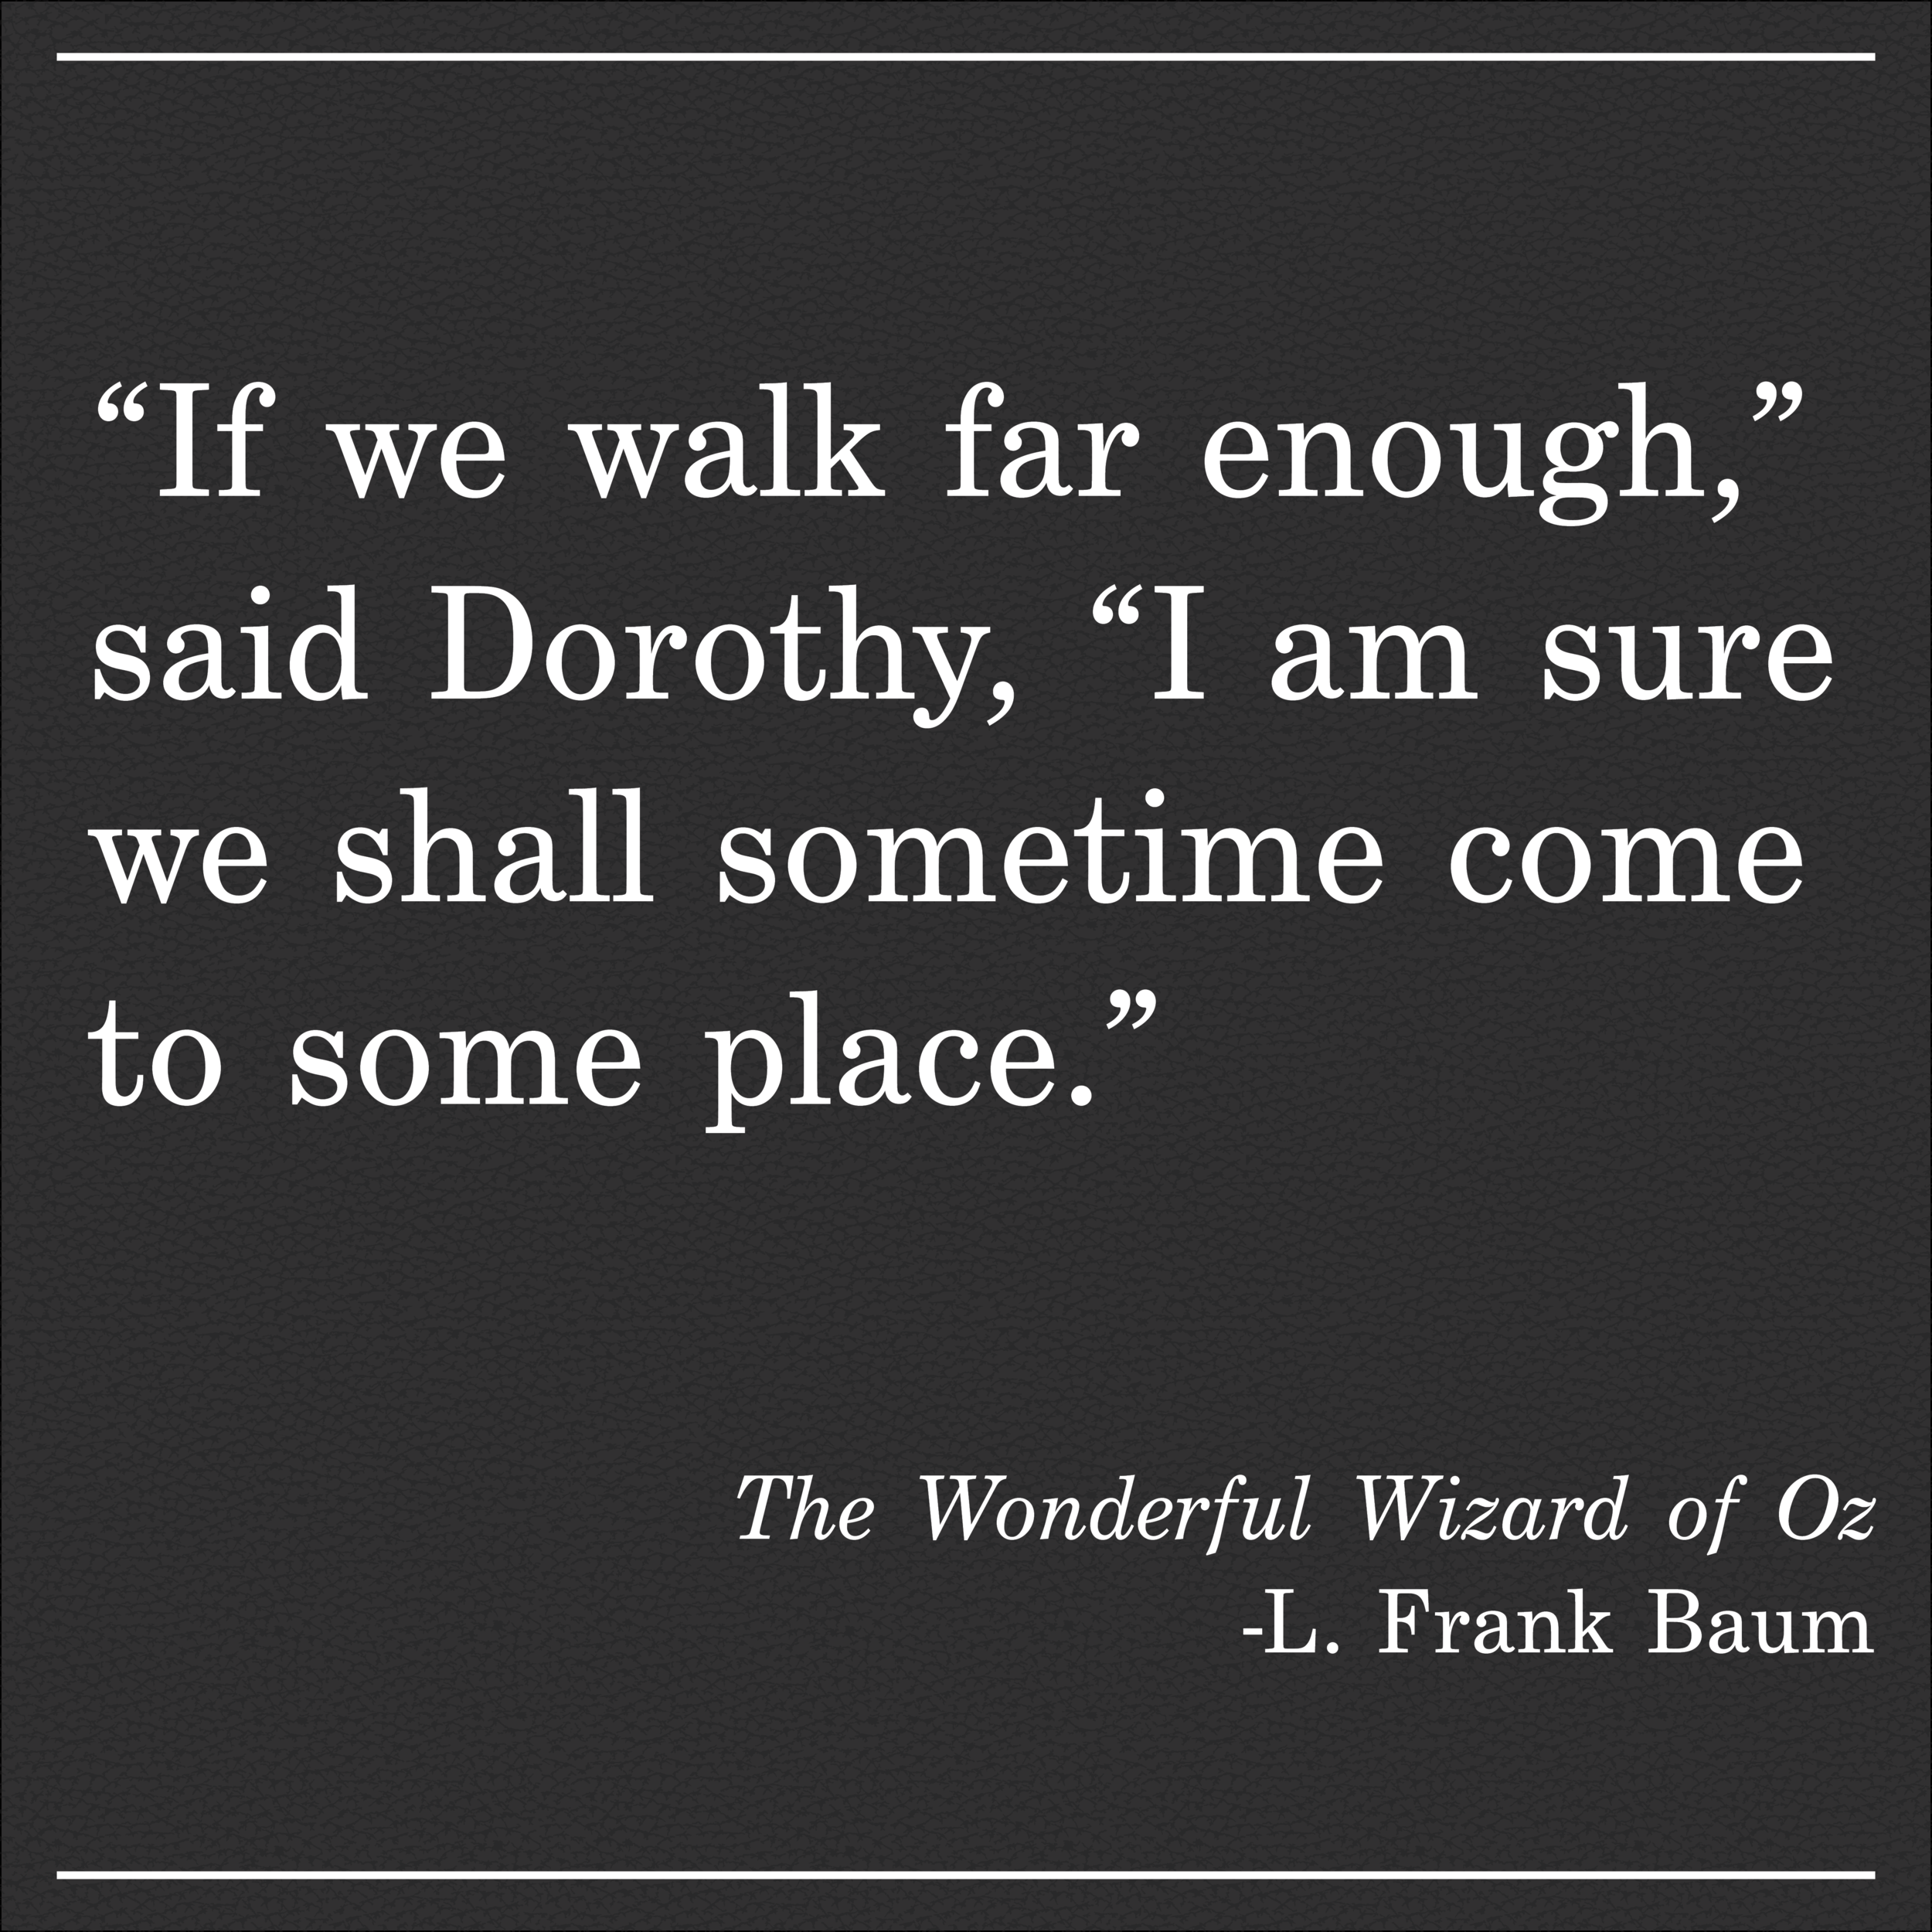 Daily Quote Baum Wizard of Oz